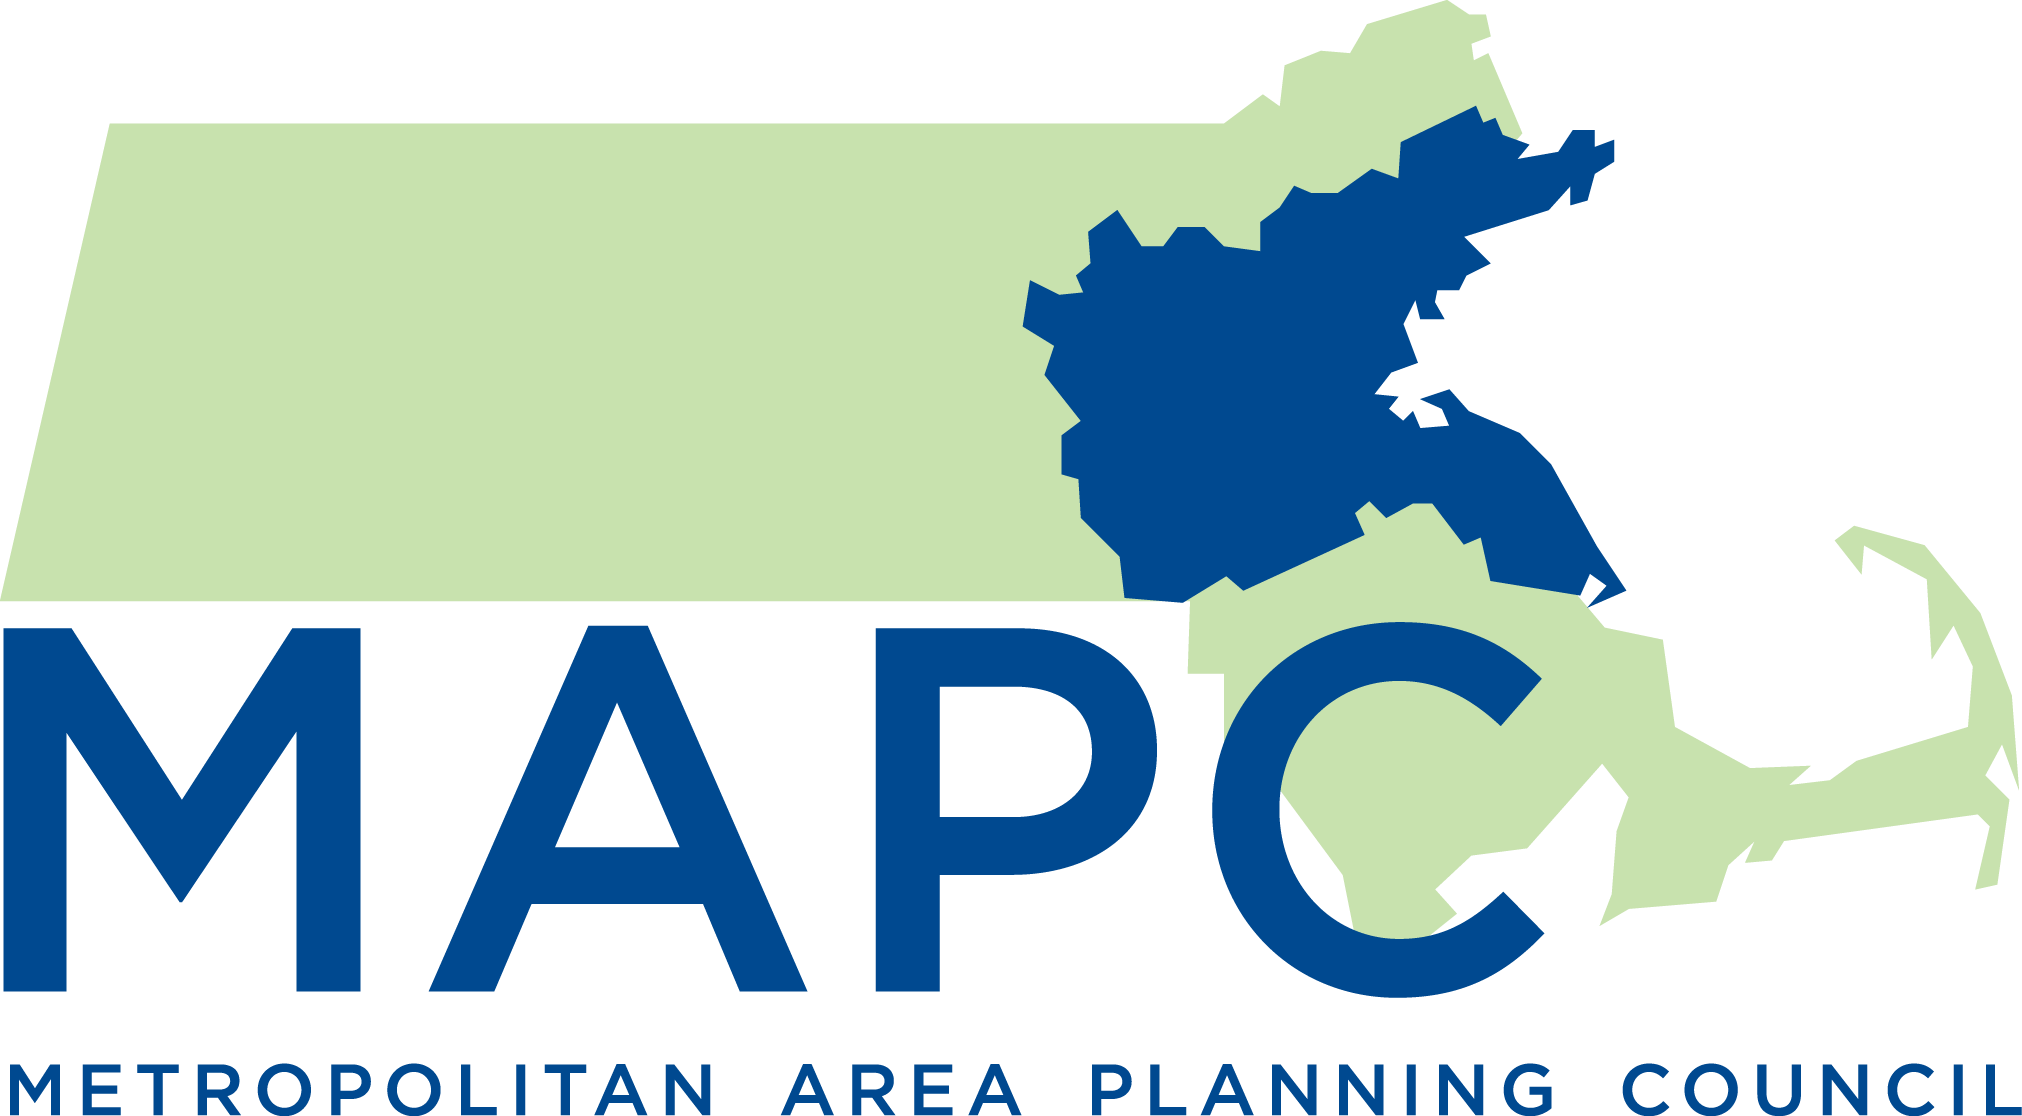 MAPC_Logo-Name_Transparent-Background.png